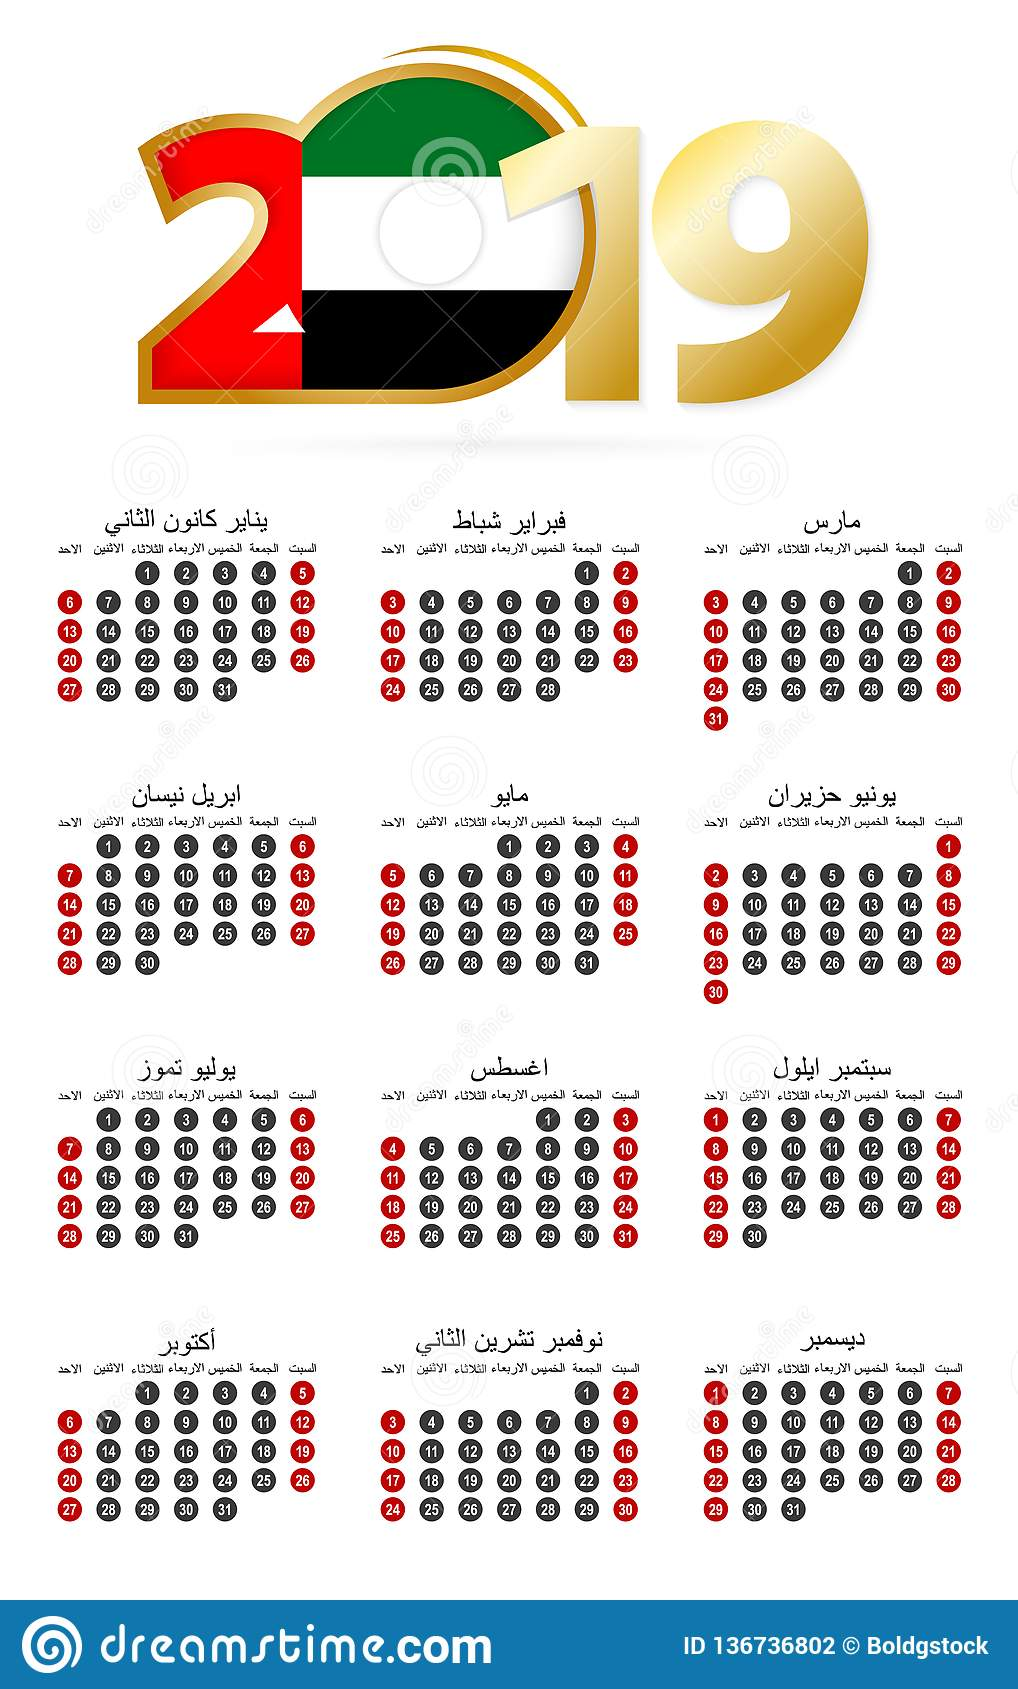 Arabic Calendar 2019 With Numbers In Circles, Week Starts On